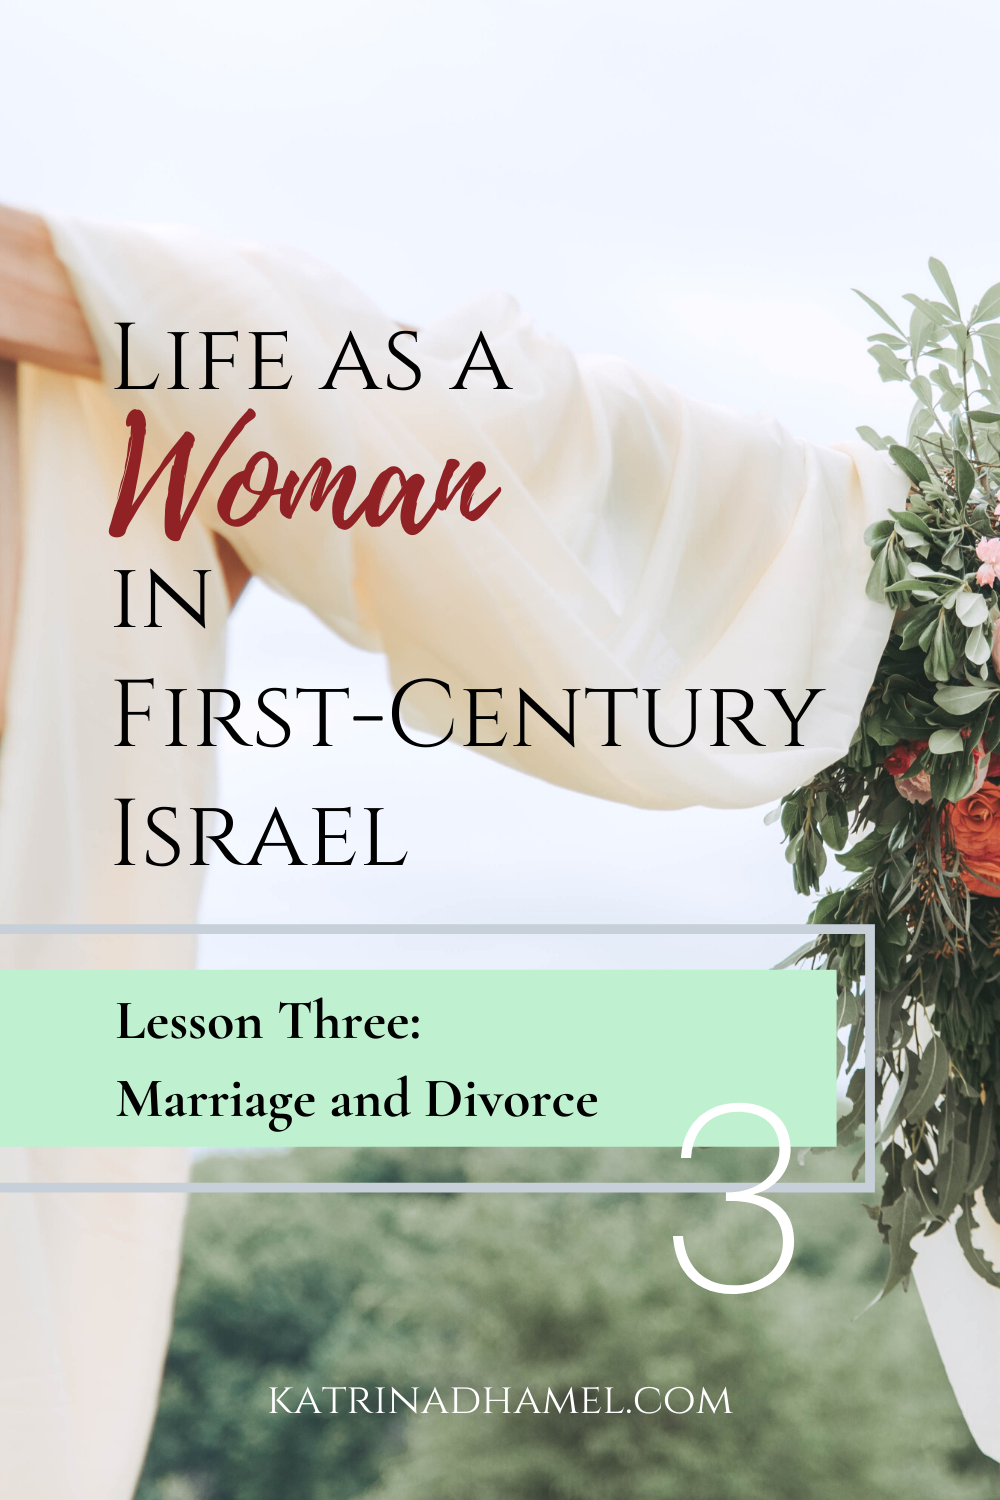 A wooden archway draped with white cloth and greenery and the text 'Life as a Woman in First-century Israel, Lesson Three: Marriage and Divorce'